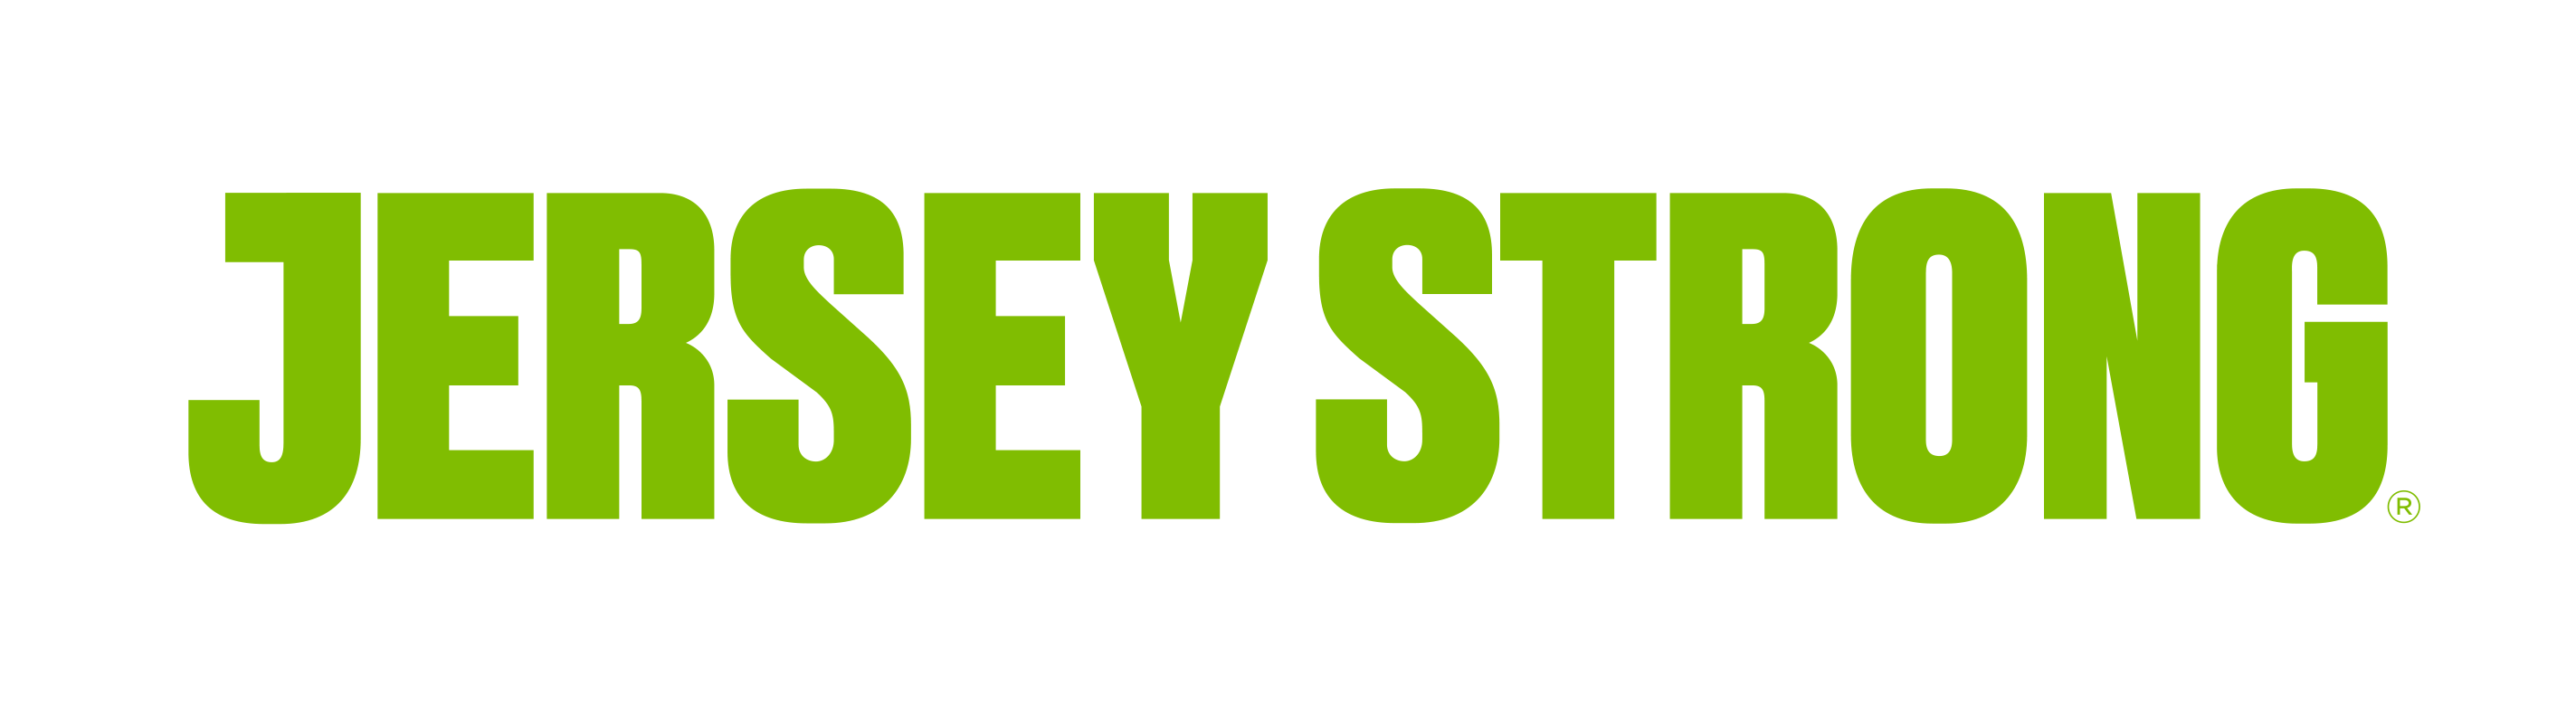 Jersey_Strong_Logo_One_Line_W_R_Green_376.png